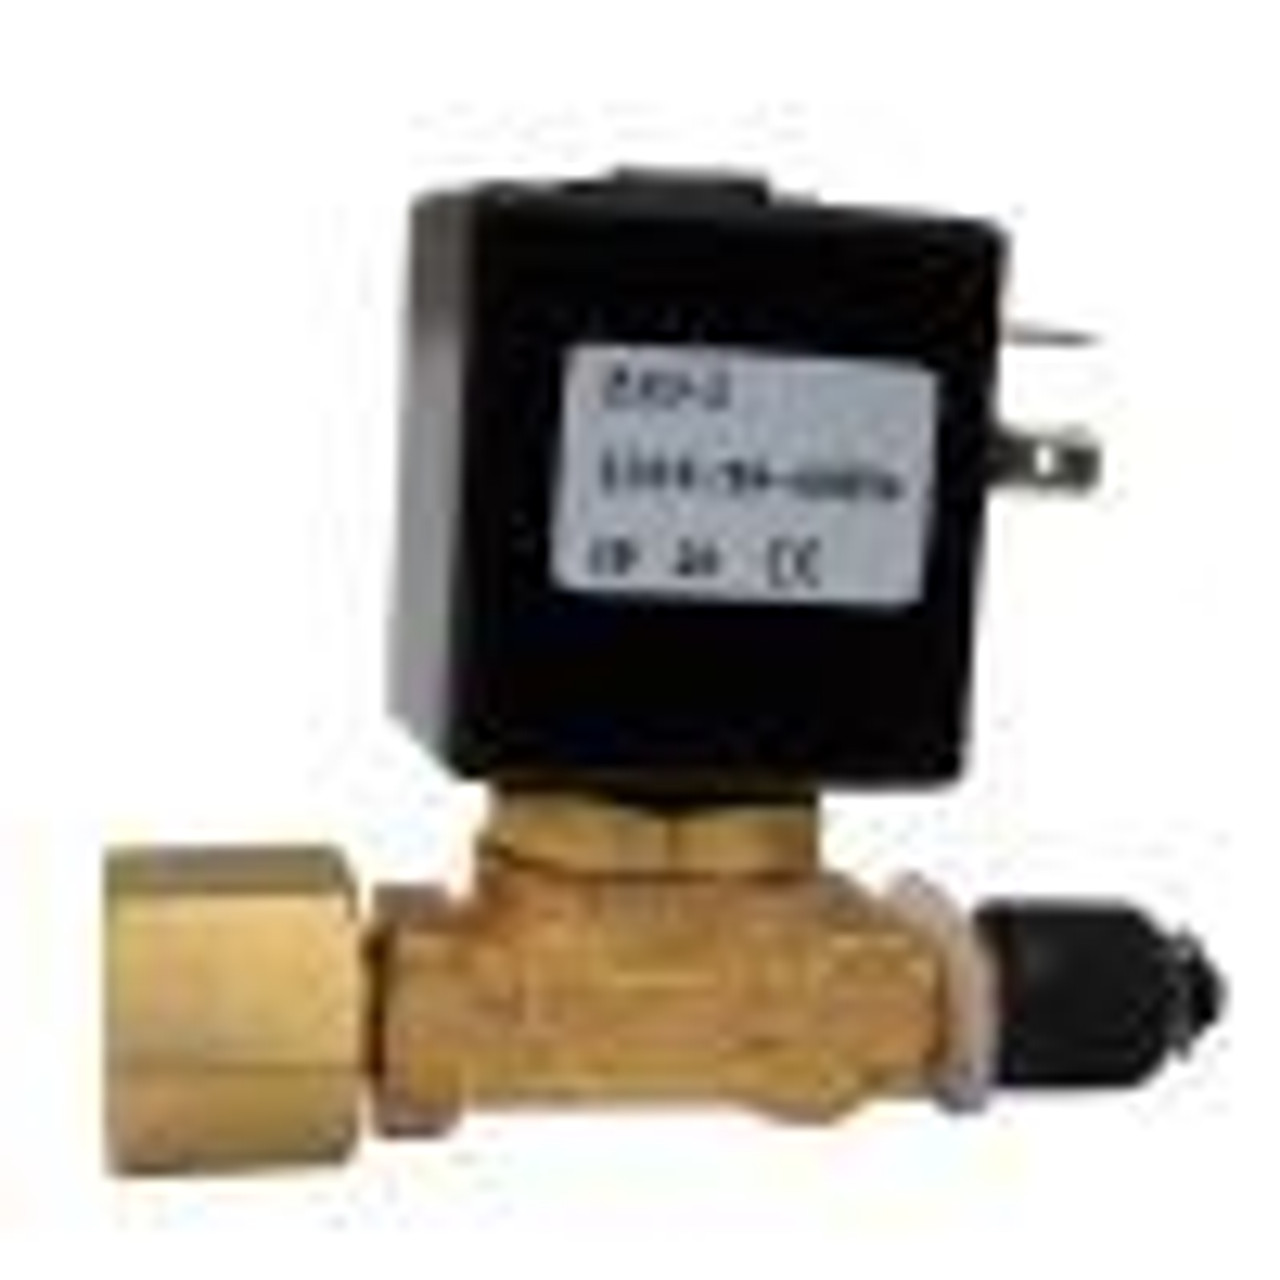 Discharge fitting with solenoid valve, 1/4 inch NPT